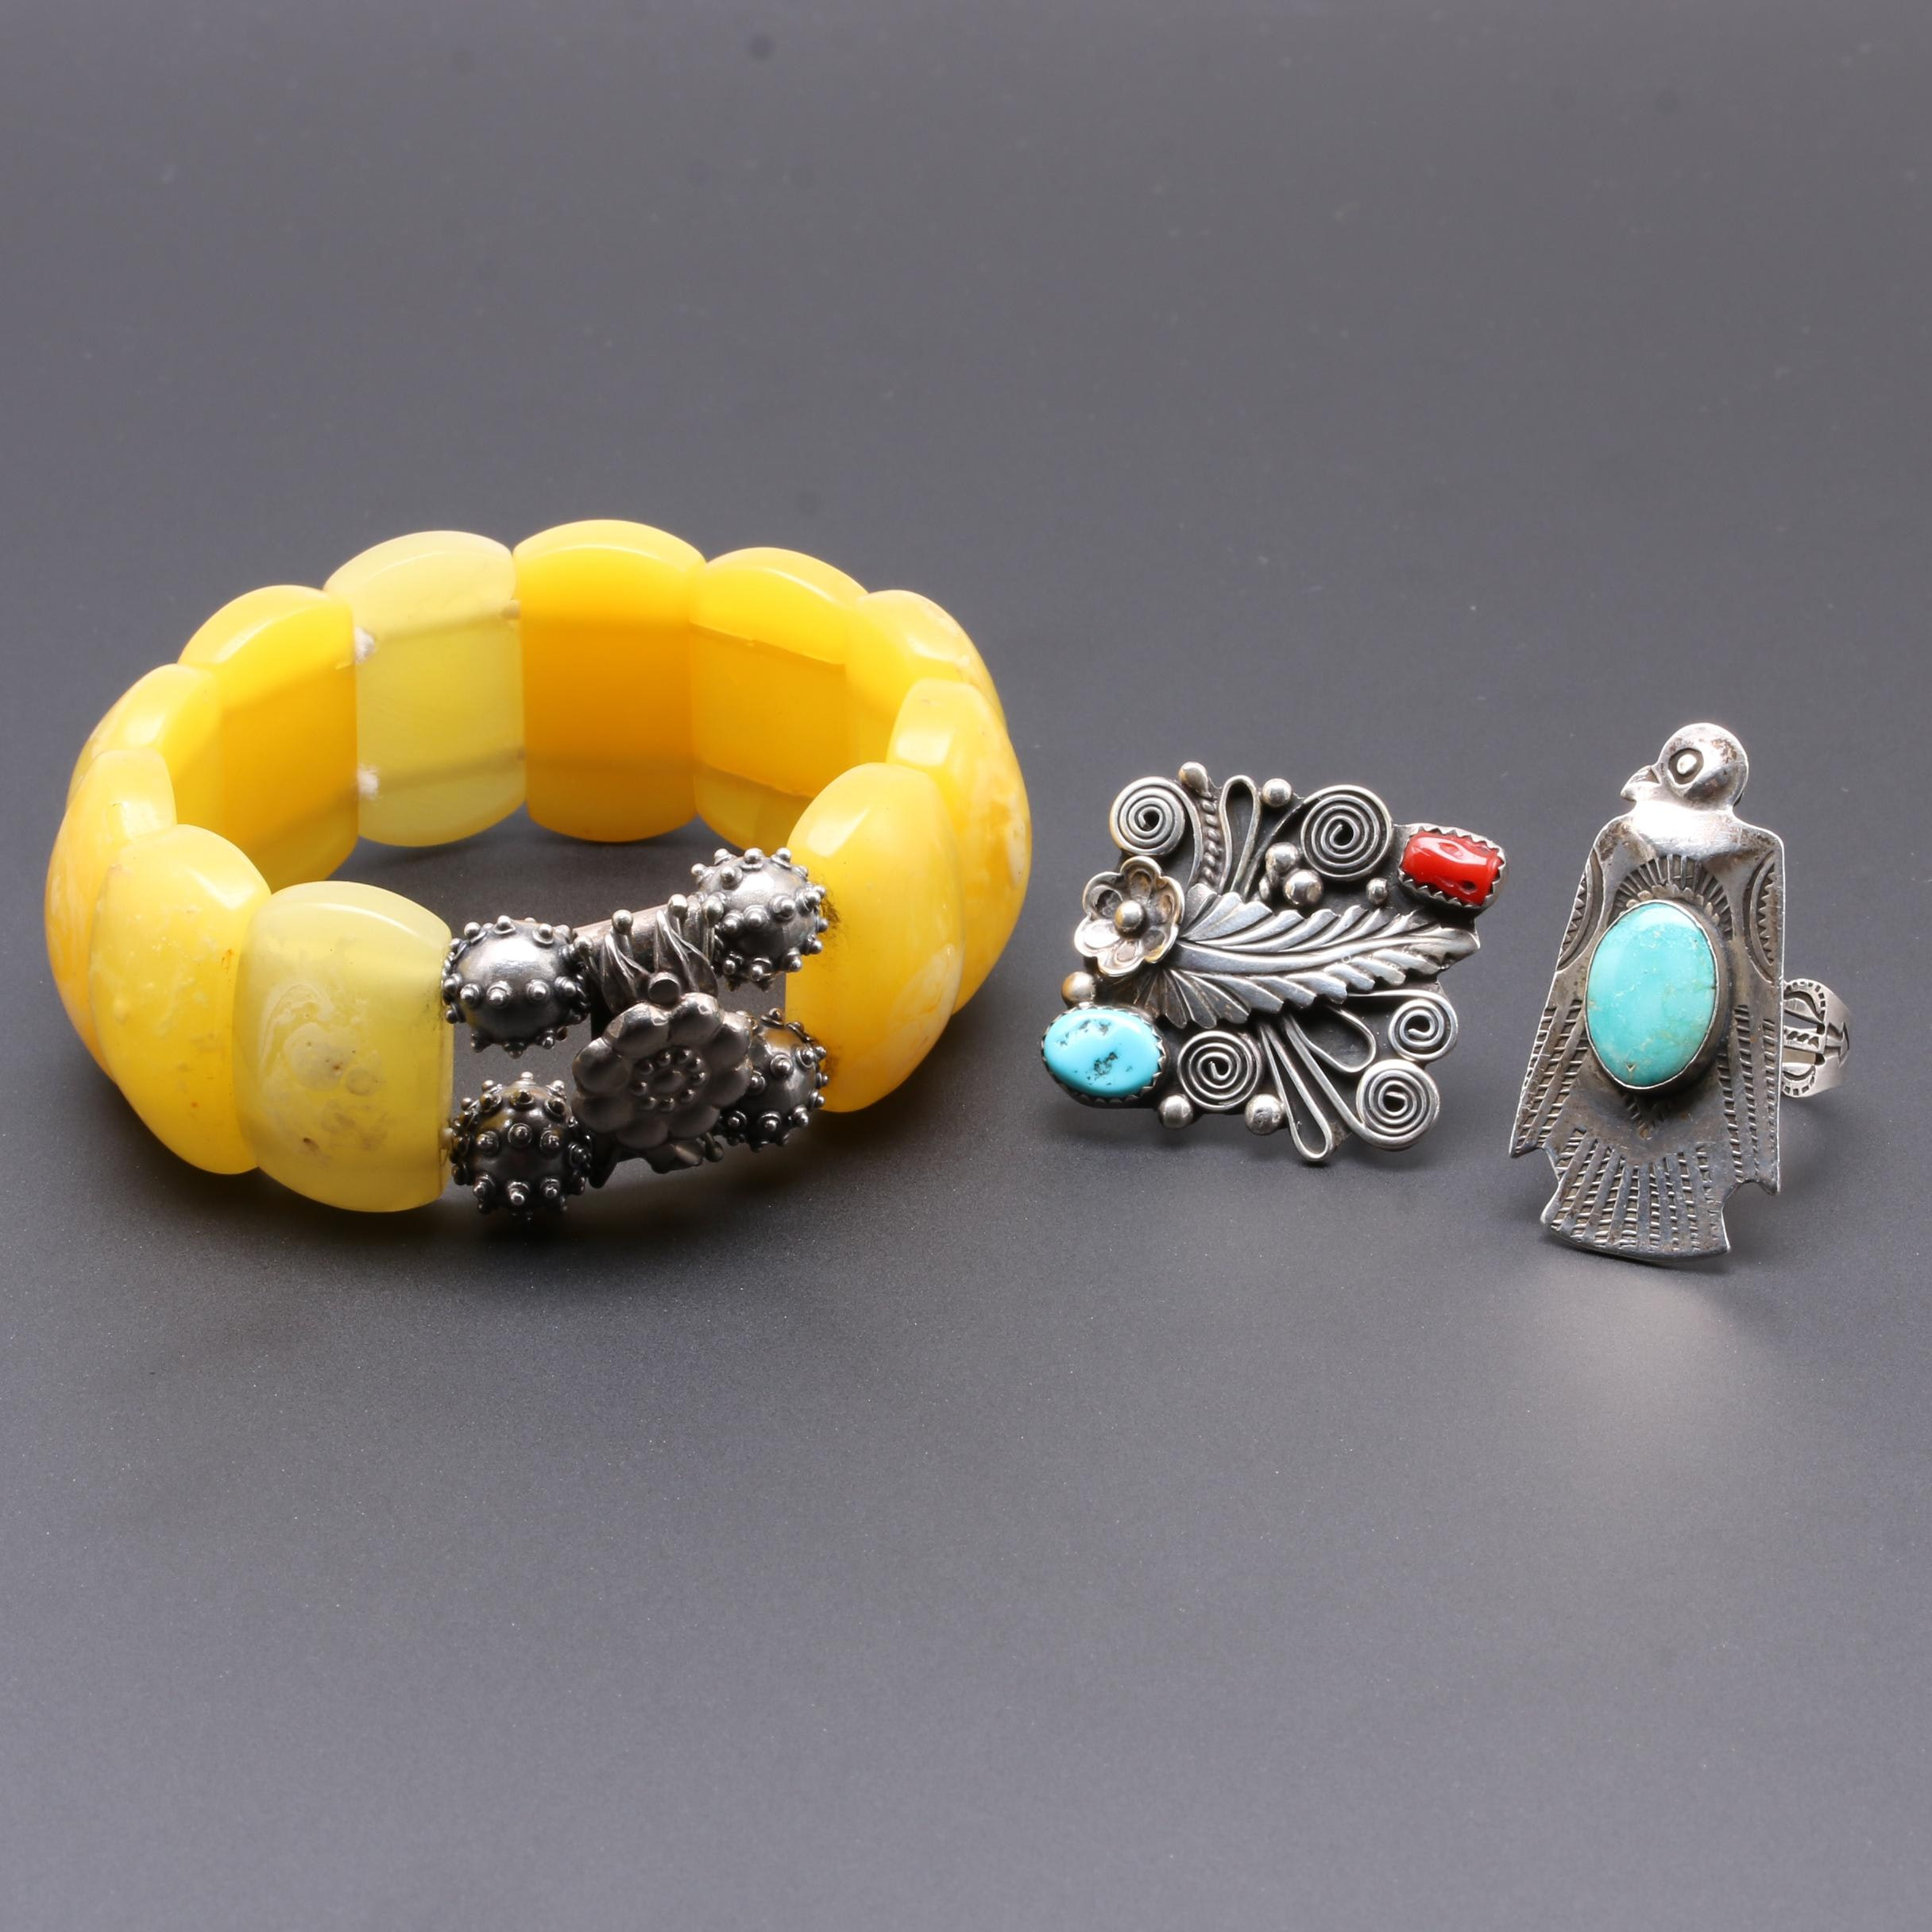 Sterling Silver Gemstone Ring and Belt Buckle with Costume Bracelet